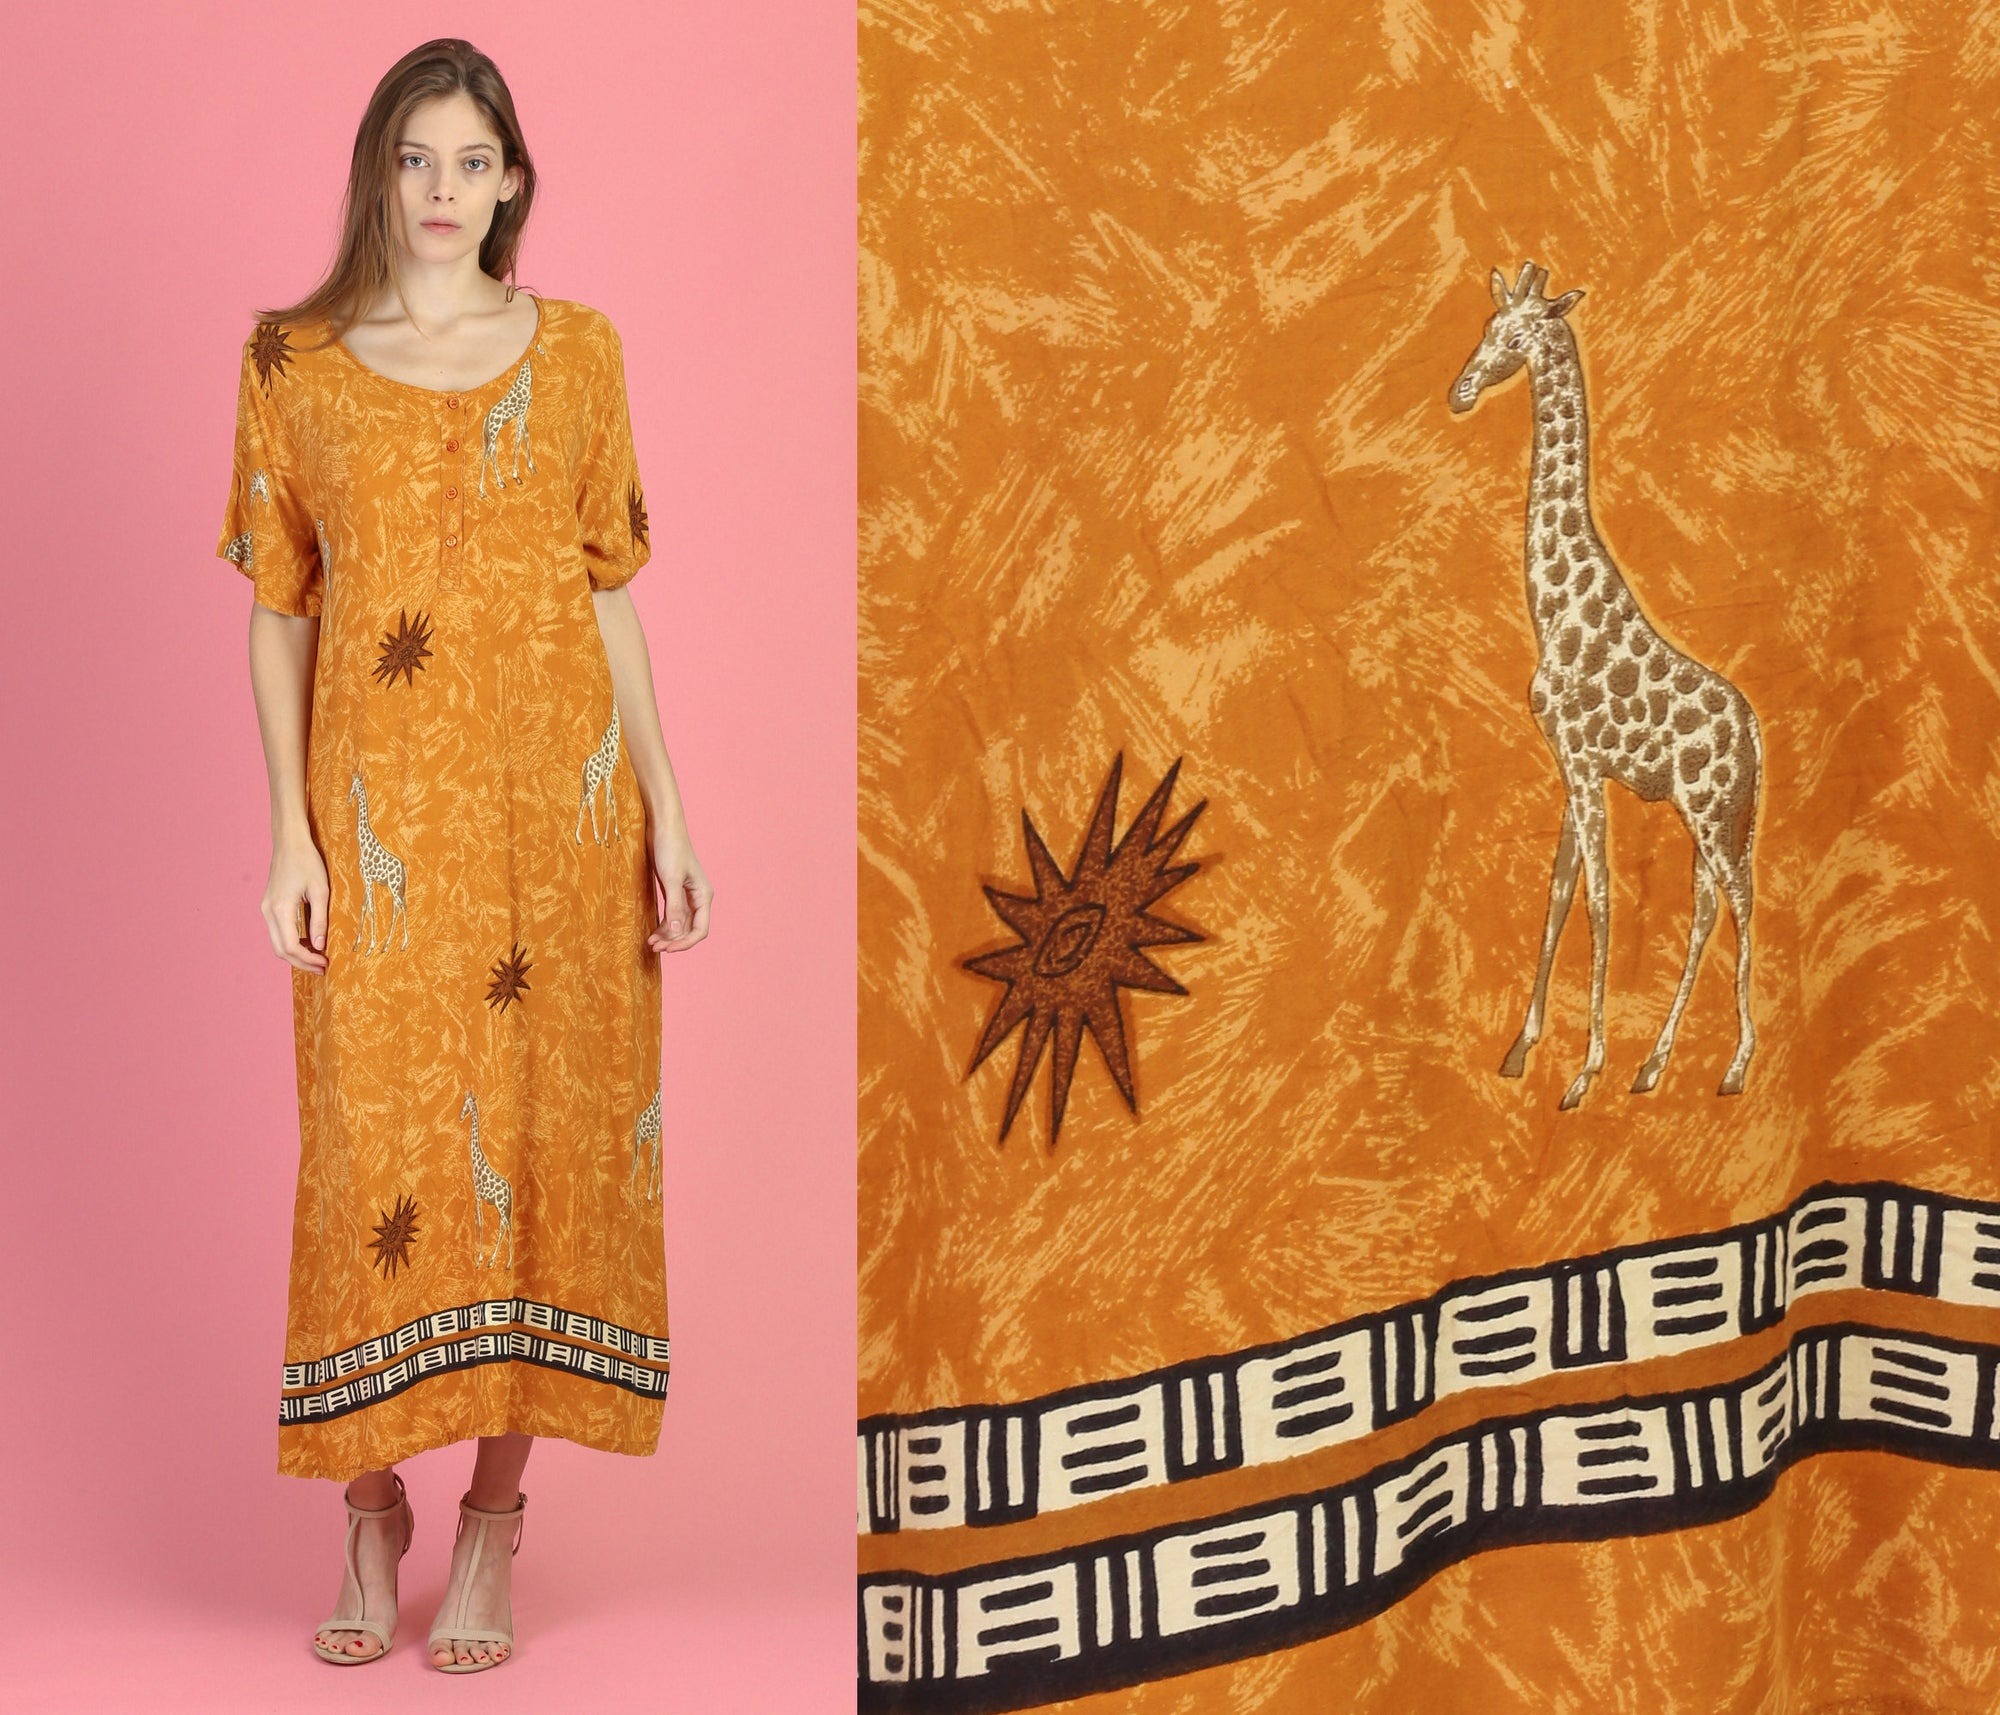 Vintage Giraffe Loungewear Kaftan Dress - Extra Large